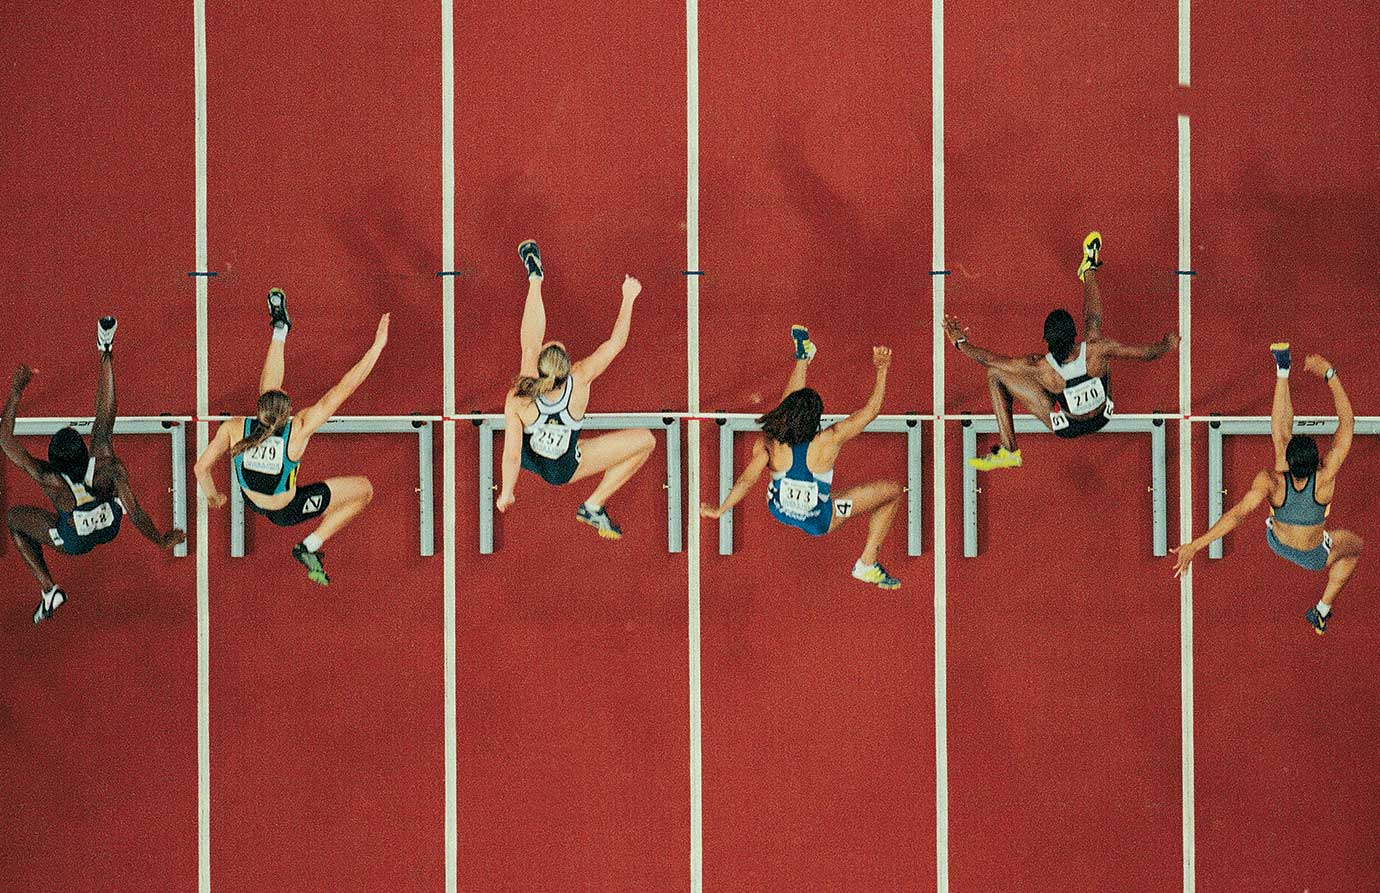 One of the semifinal heats of the 60-meter hurdles at the 1999 USA Indoor Track & Field Championships in Atlanta.